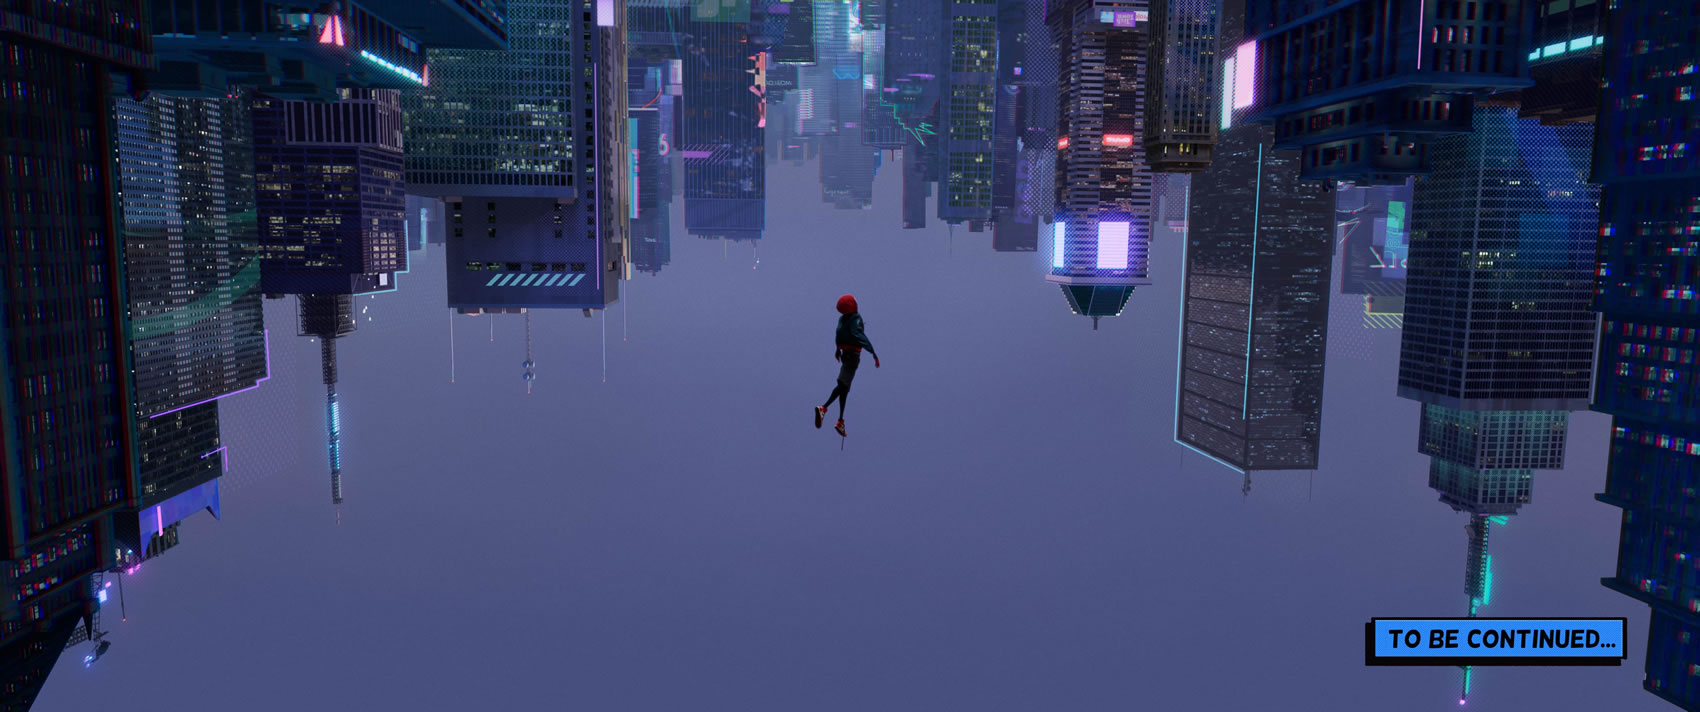 Spider-Man: Into the Spider-Verse © Sony Pictures